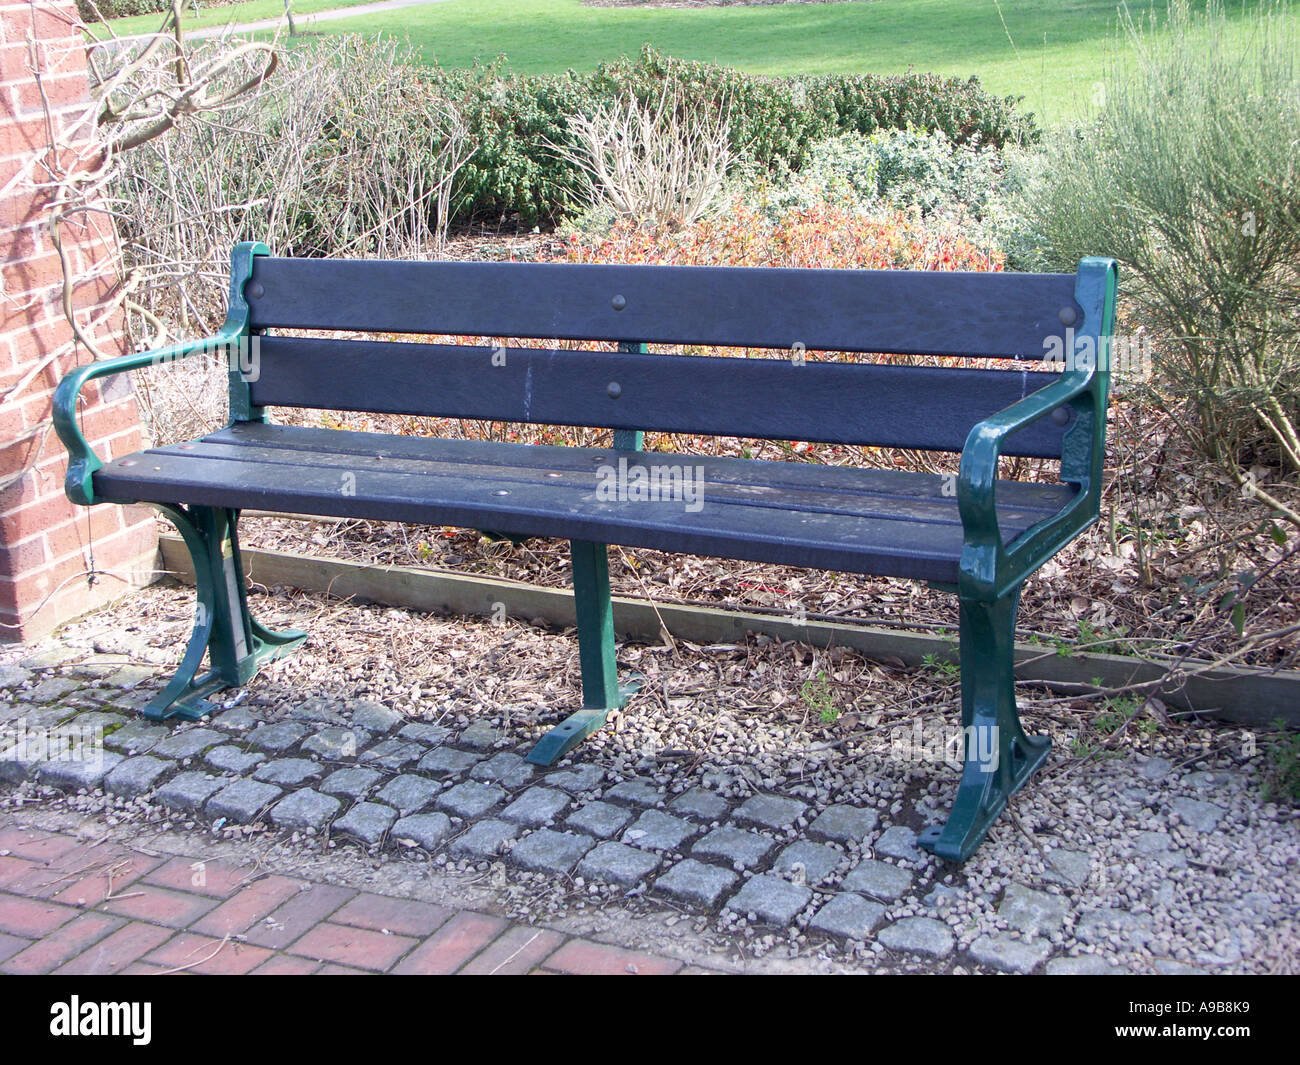 Park Bench With Seating Slats Made From Recycled Plastic Waste Stock Photo Alamy